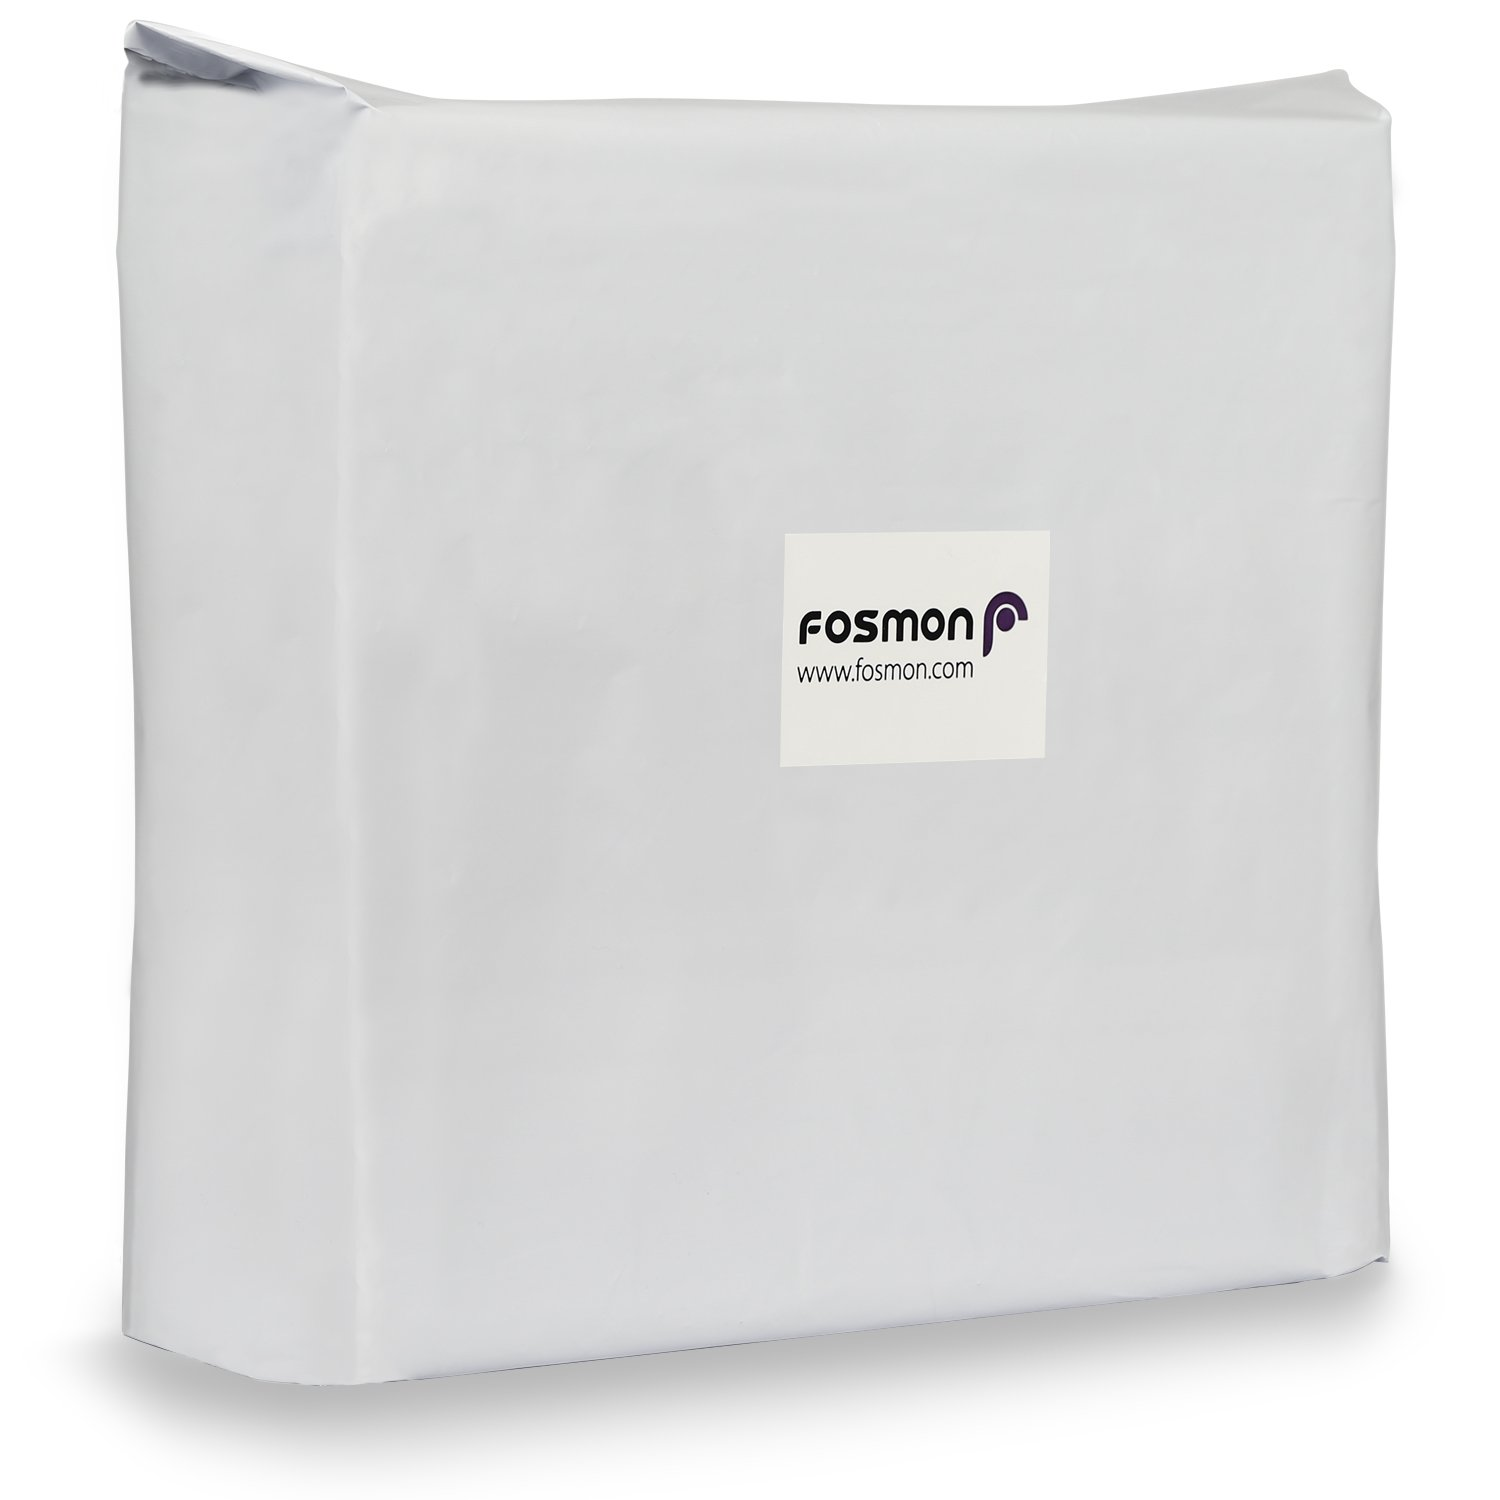 500 - 24x24 Fosmon Large Self-Seal Tear-Proof Polyethylene Mailers (500) by Fosmon (Image #3)